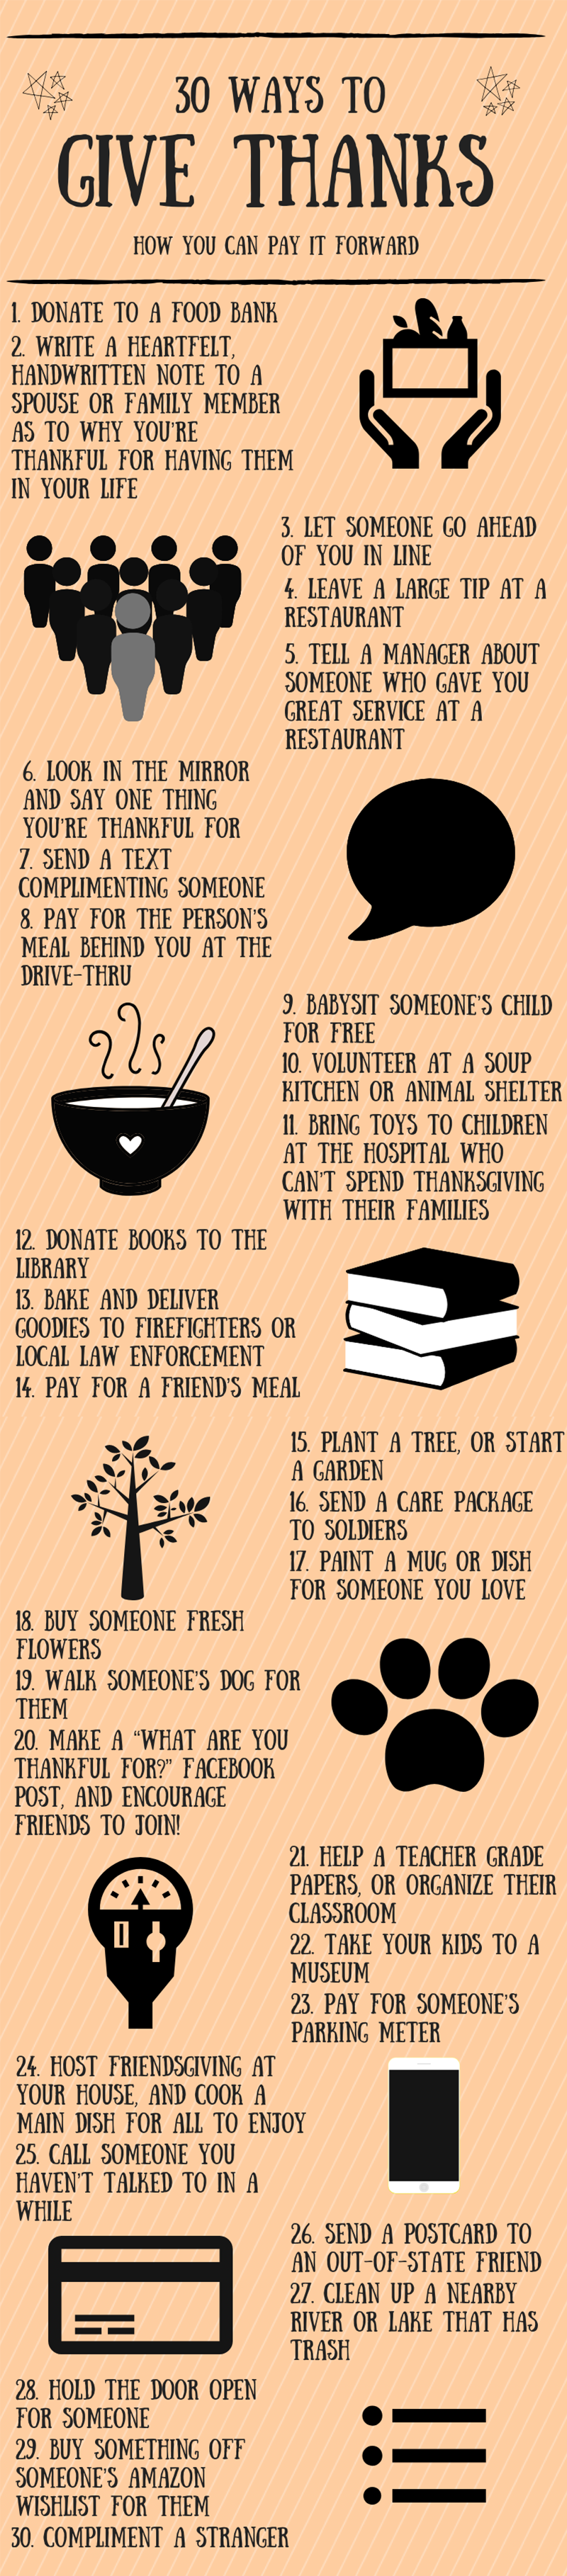 30 ways to give thanks graphic